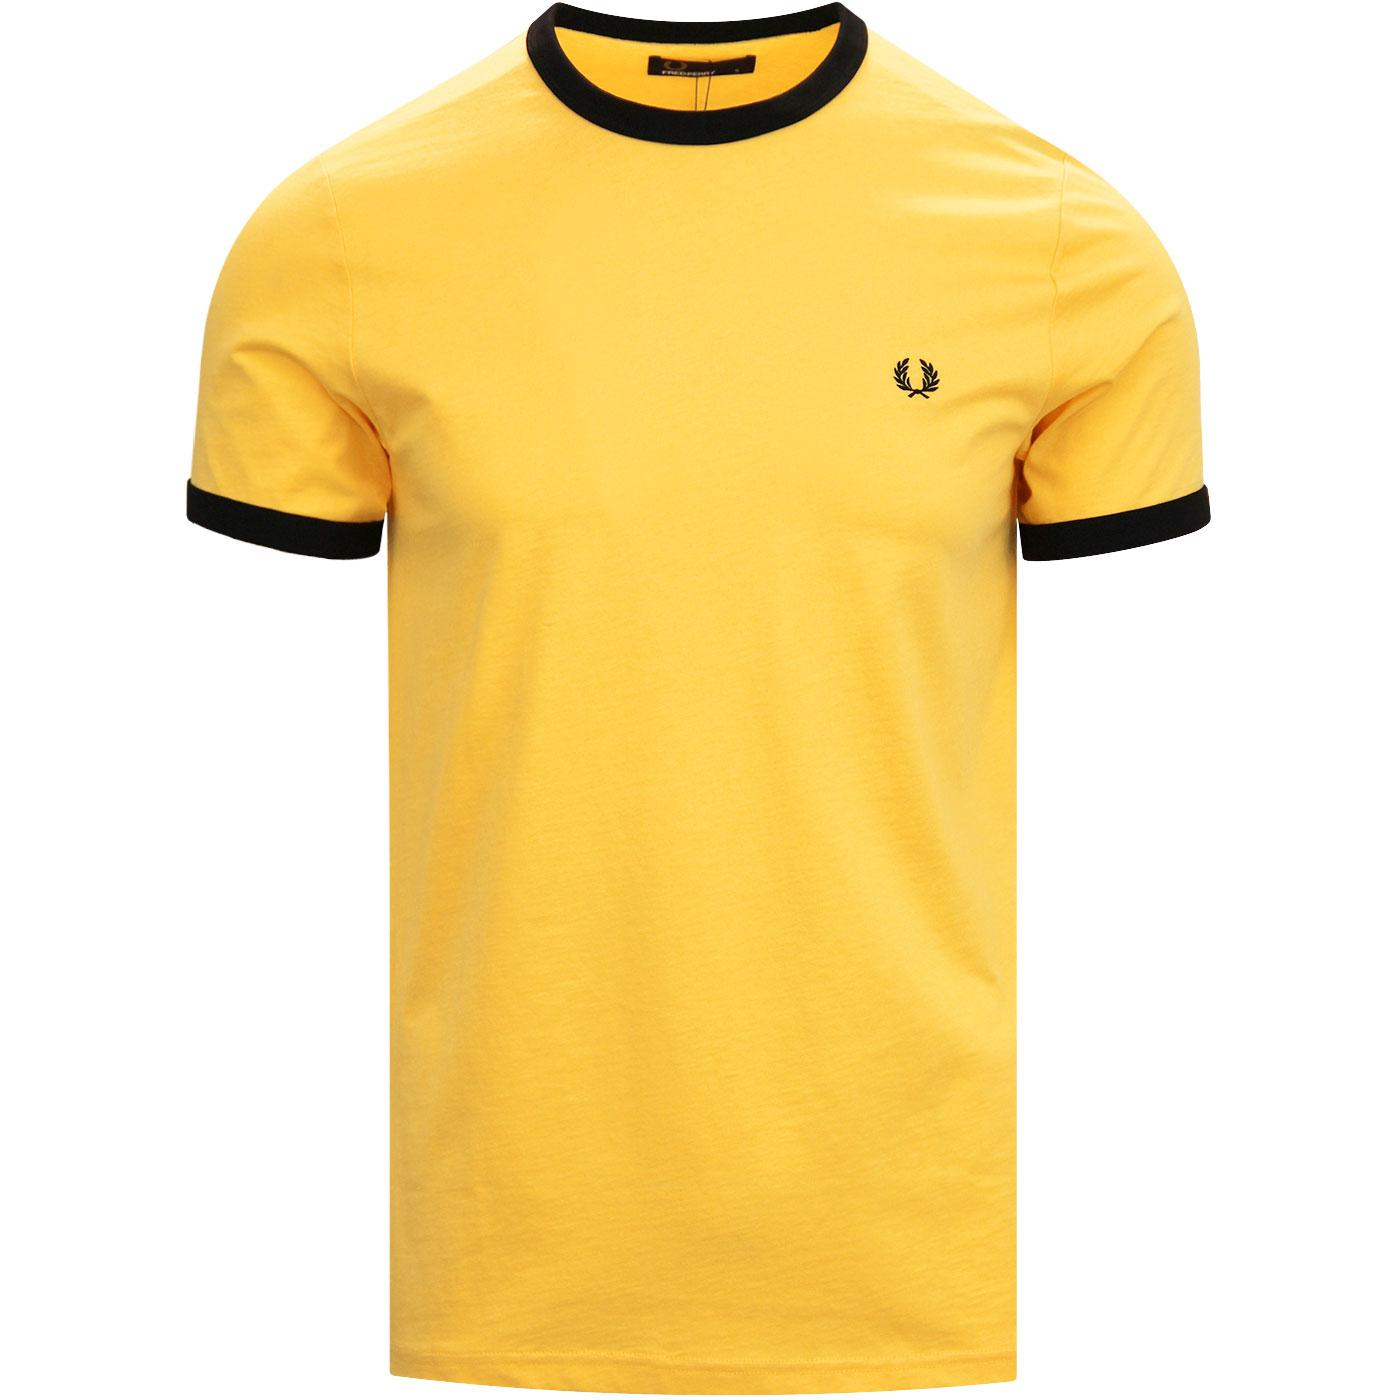 FRED PERRY Men's Mod Retro Crew Ringer Tee (EY)